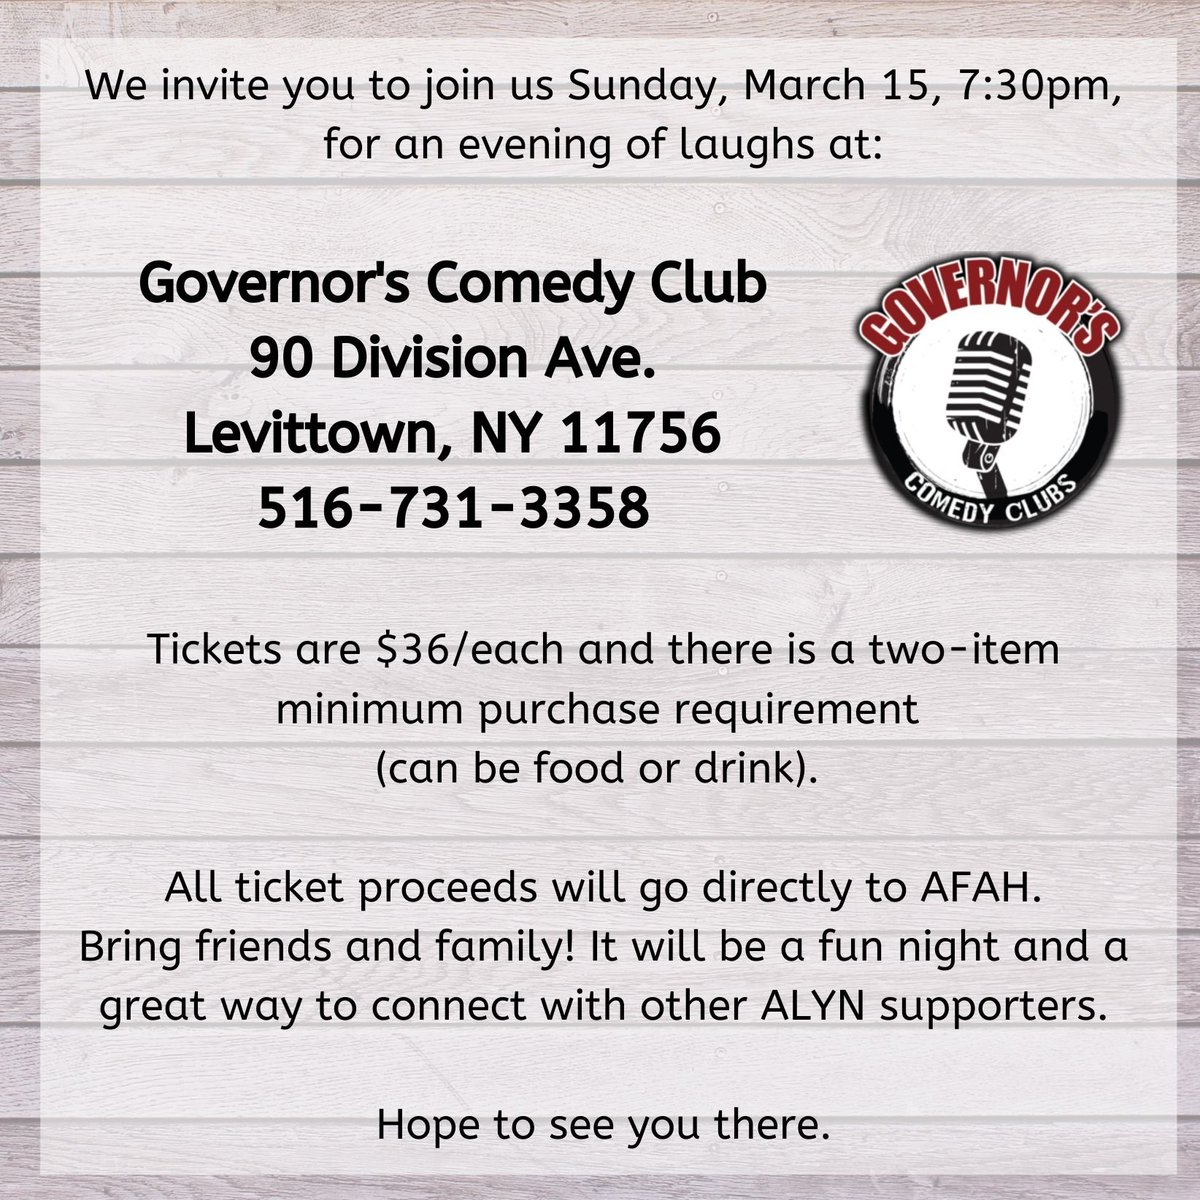 Register now for comedy night, Sunday, March 15! https://t.co/6mPMj6QfOM #comedynight #alynkids https://t.co/QvnipKBk5g